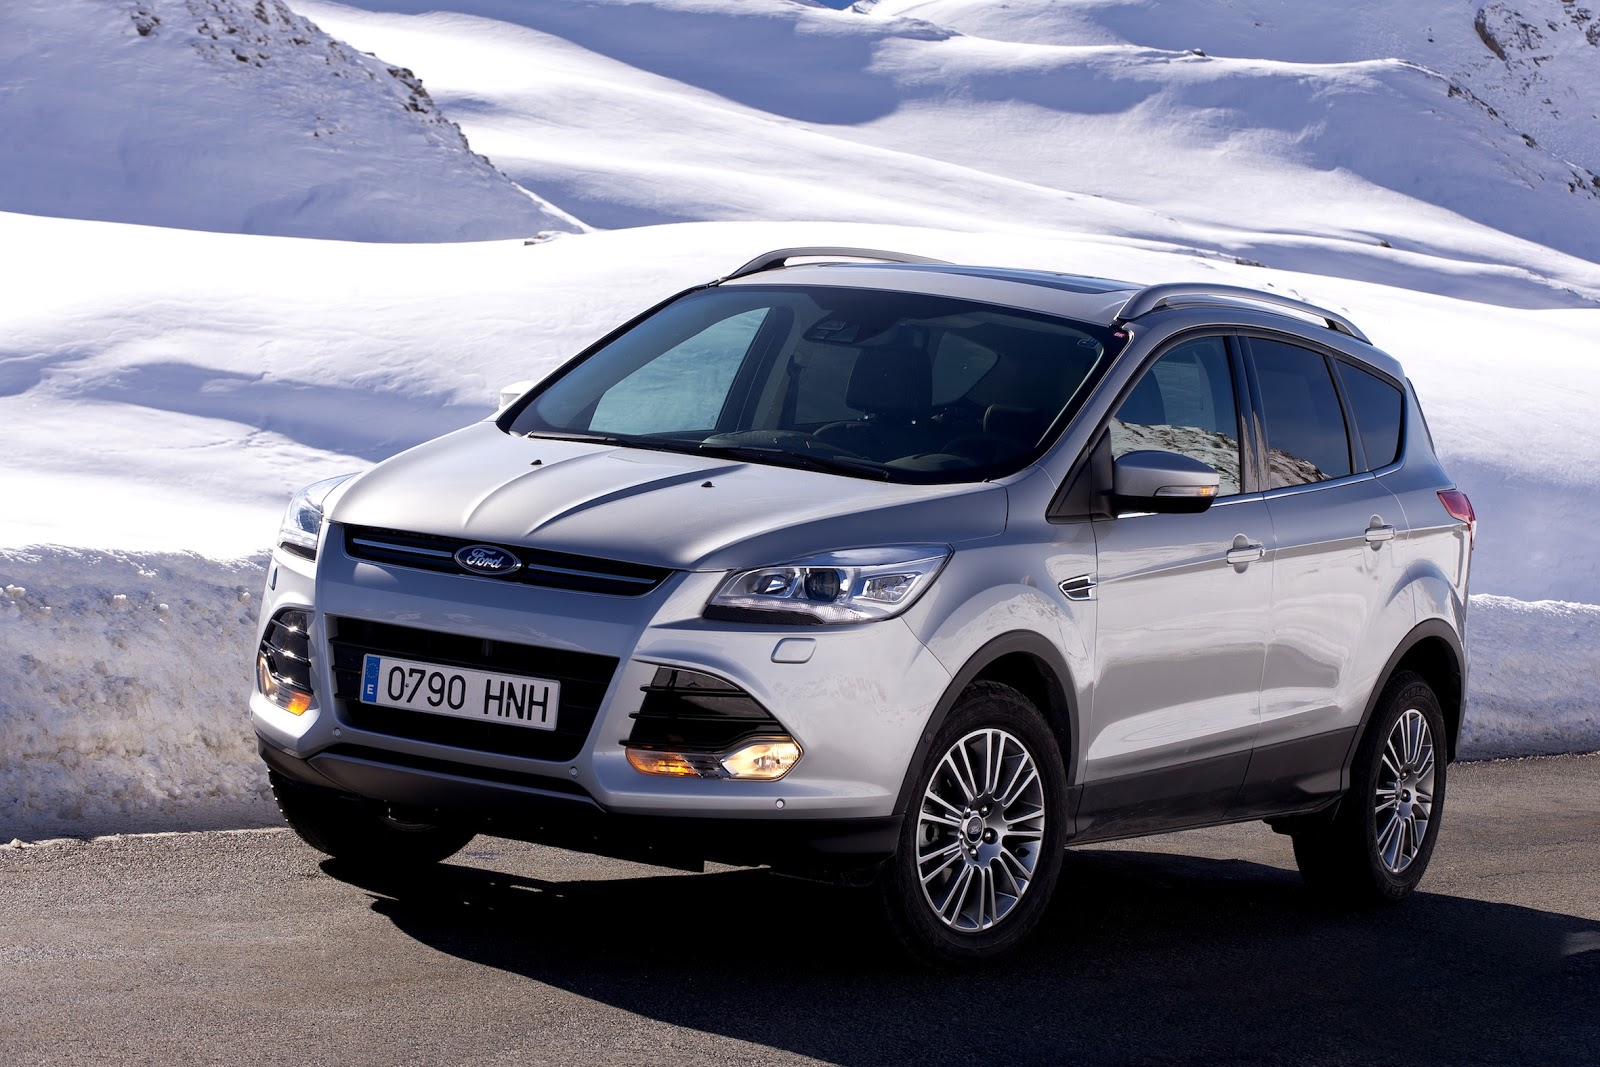 der neue ford kuga die zweite modellgeneration des. Black Bedroom Furniture Sets. Home Design Ideas